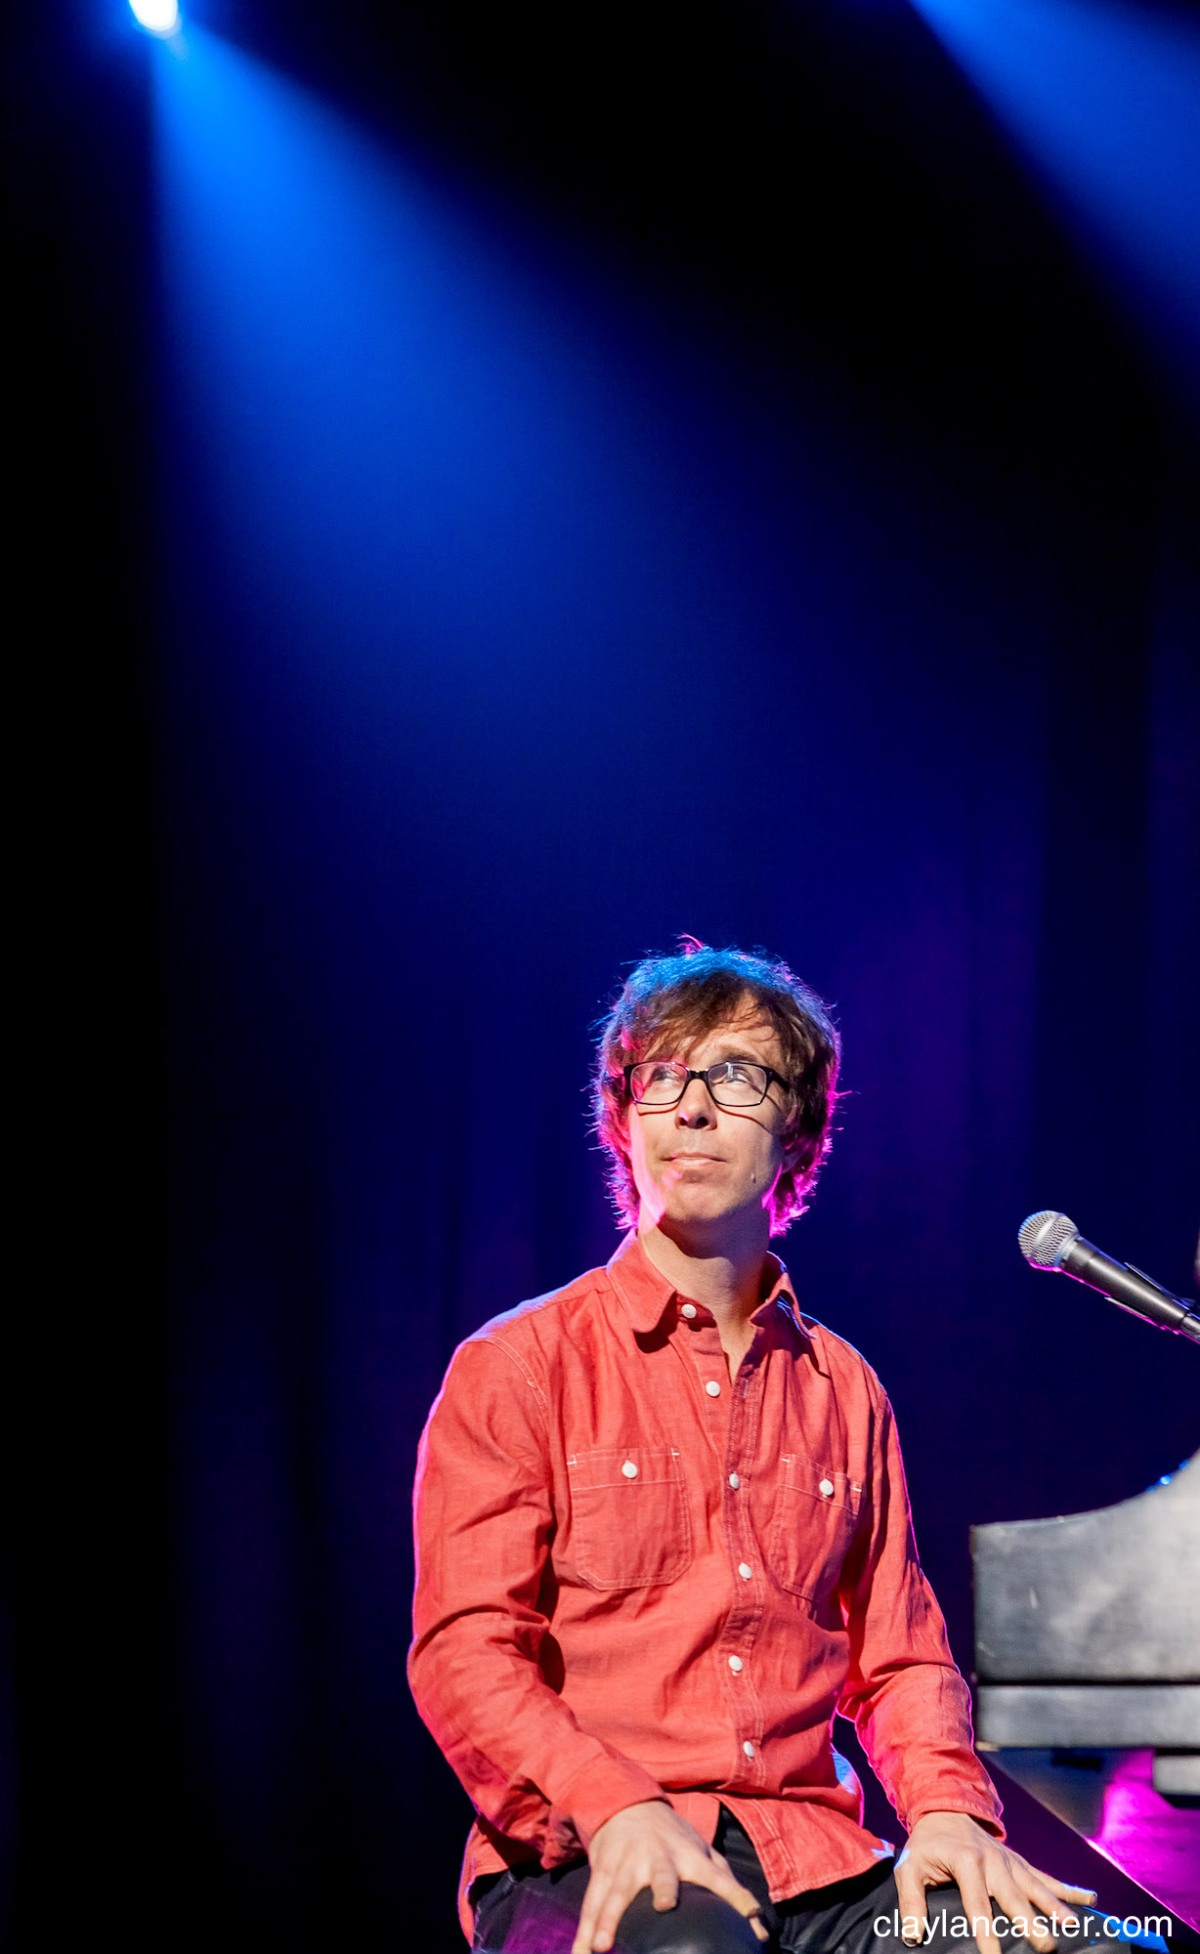 Ben Folds. Photo by Clay Lancaster (claylancaster.com)